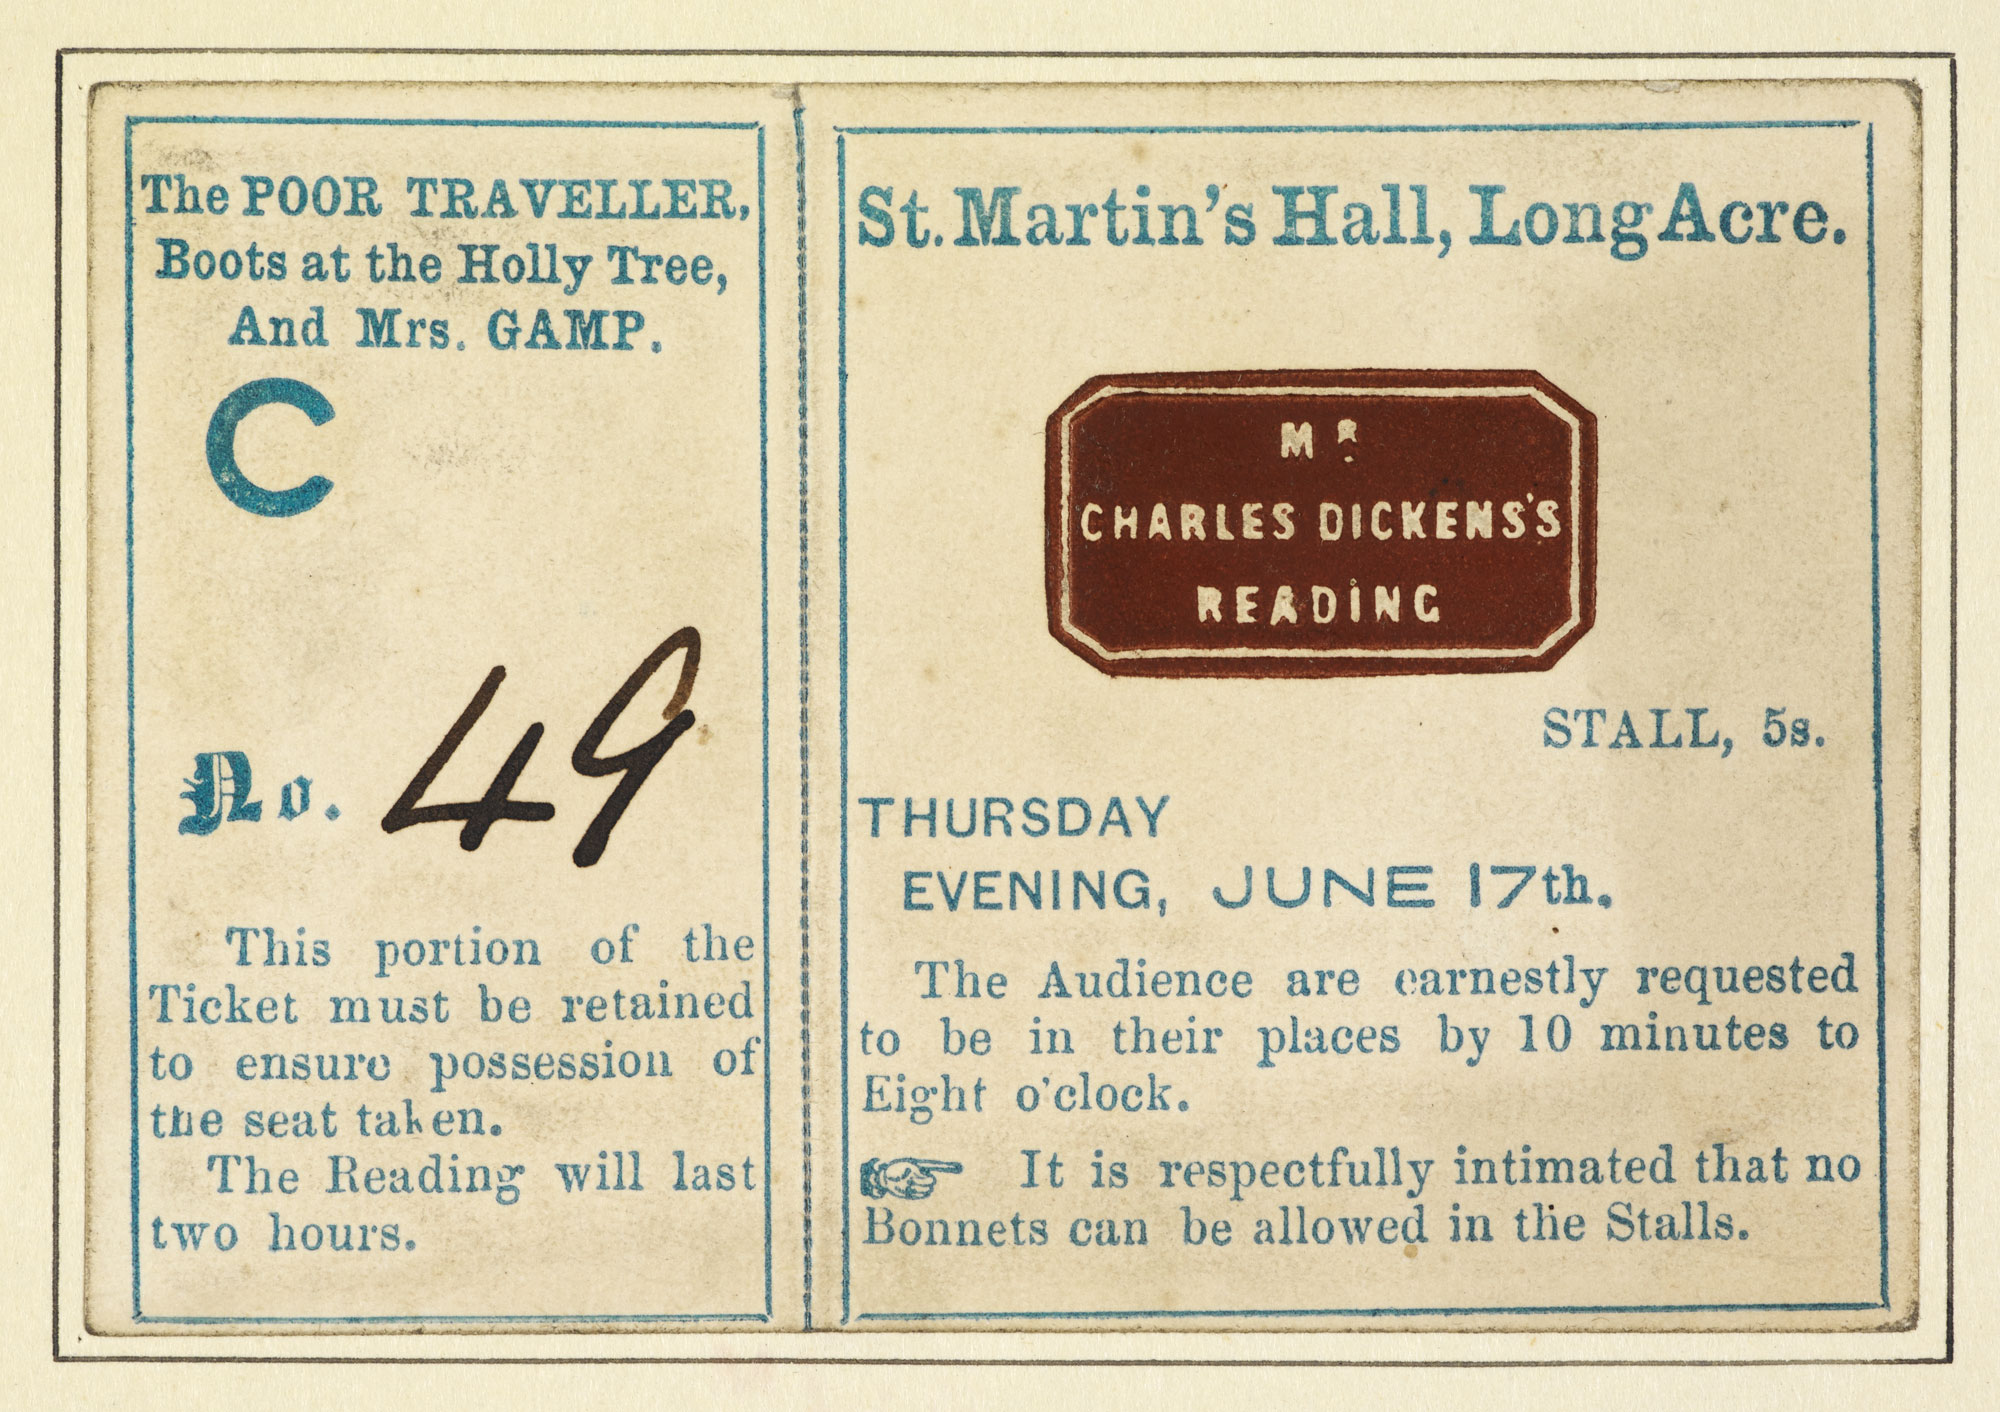 Original ticket for a reading by Charles Dickens [page: 147]